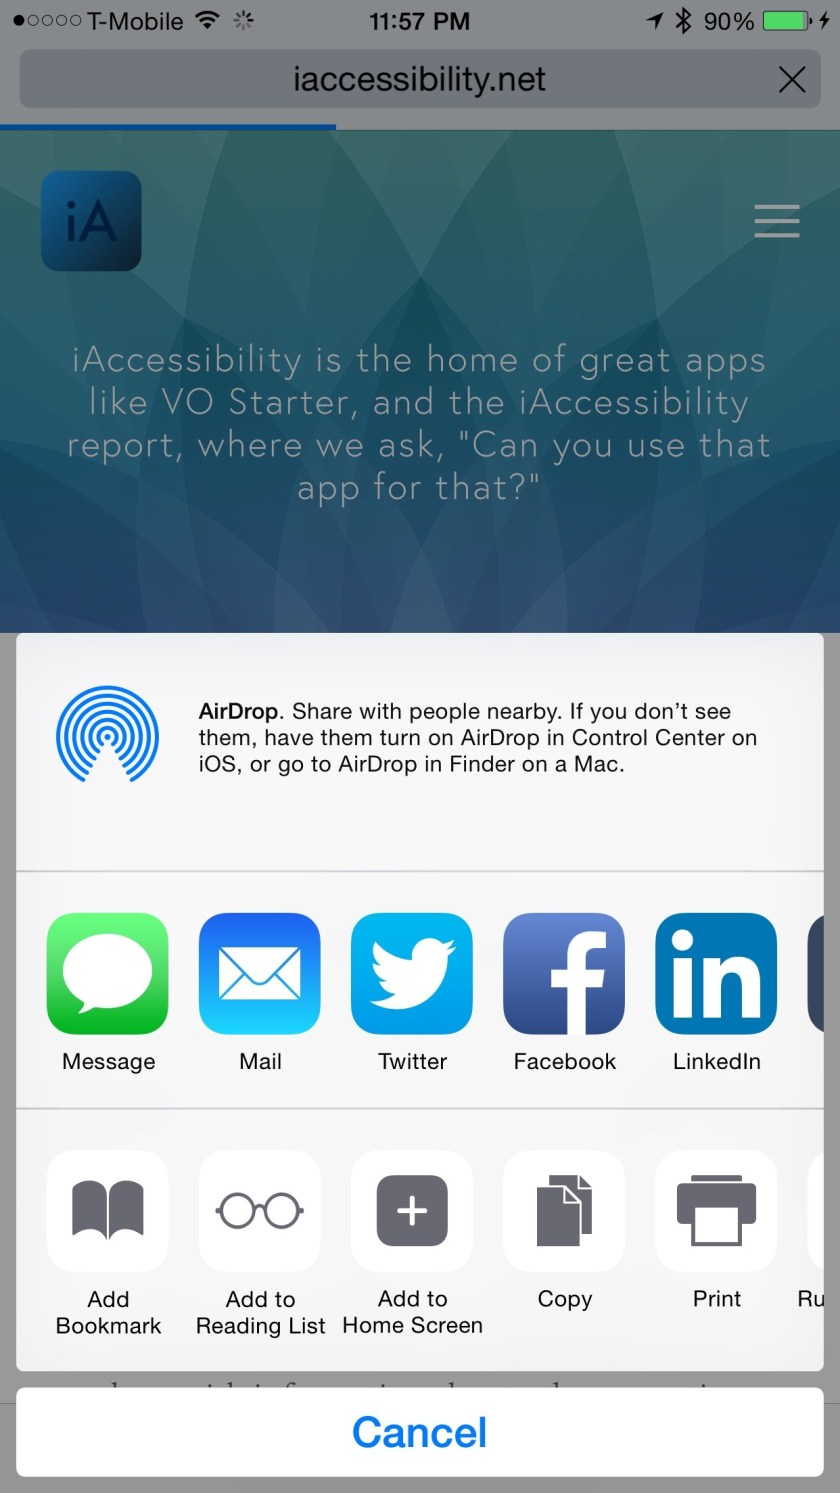 Picture 1 showing a share screen.